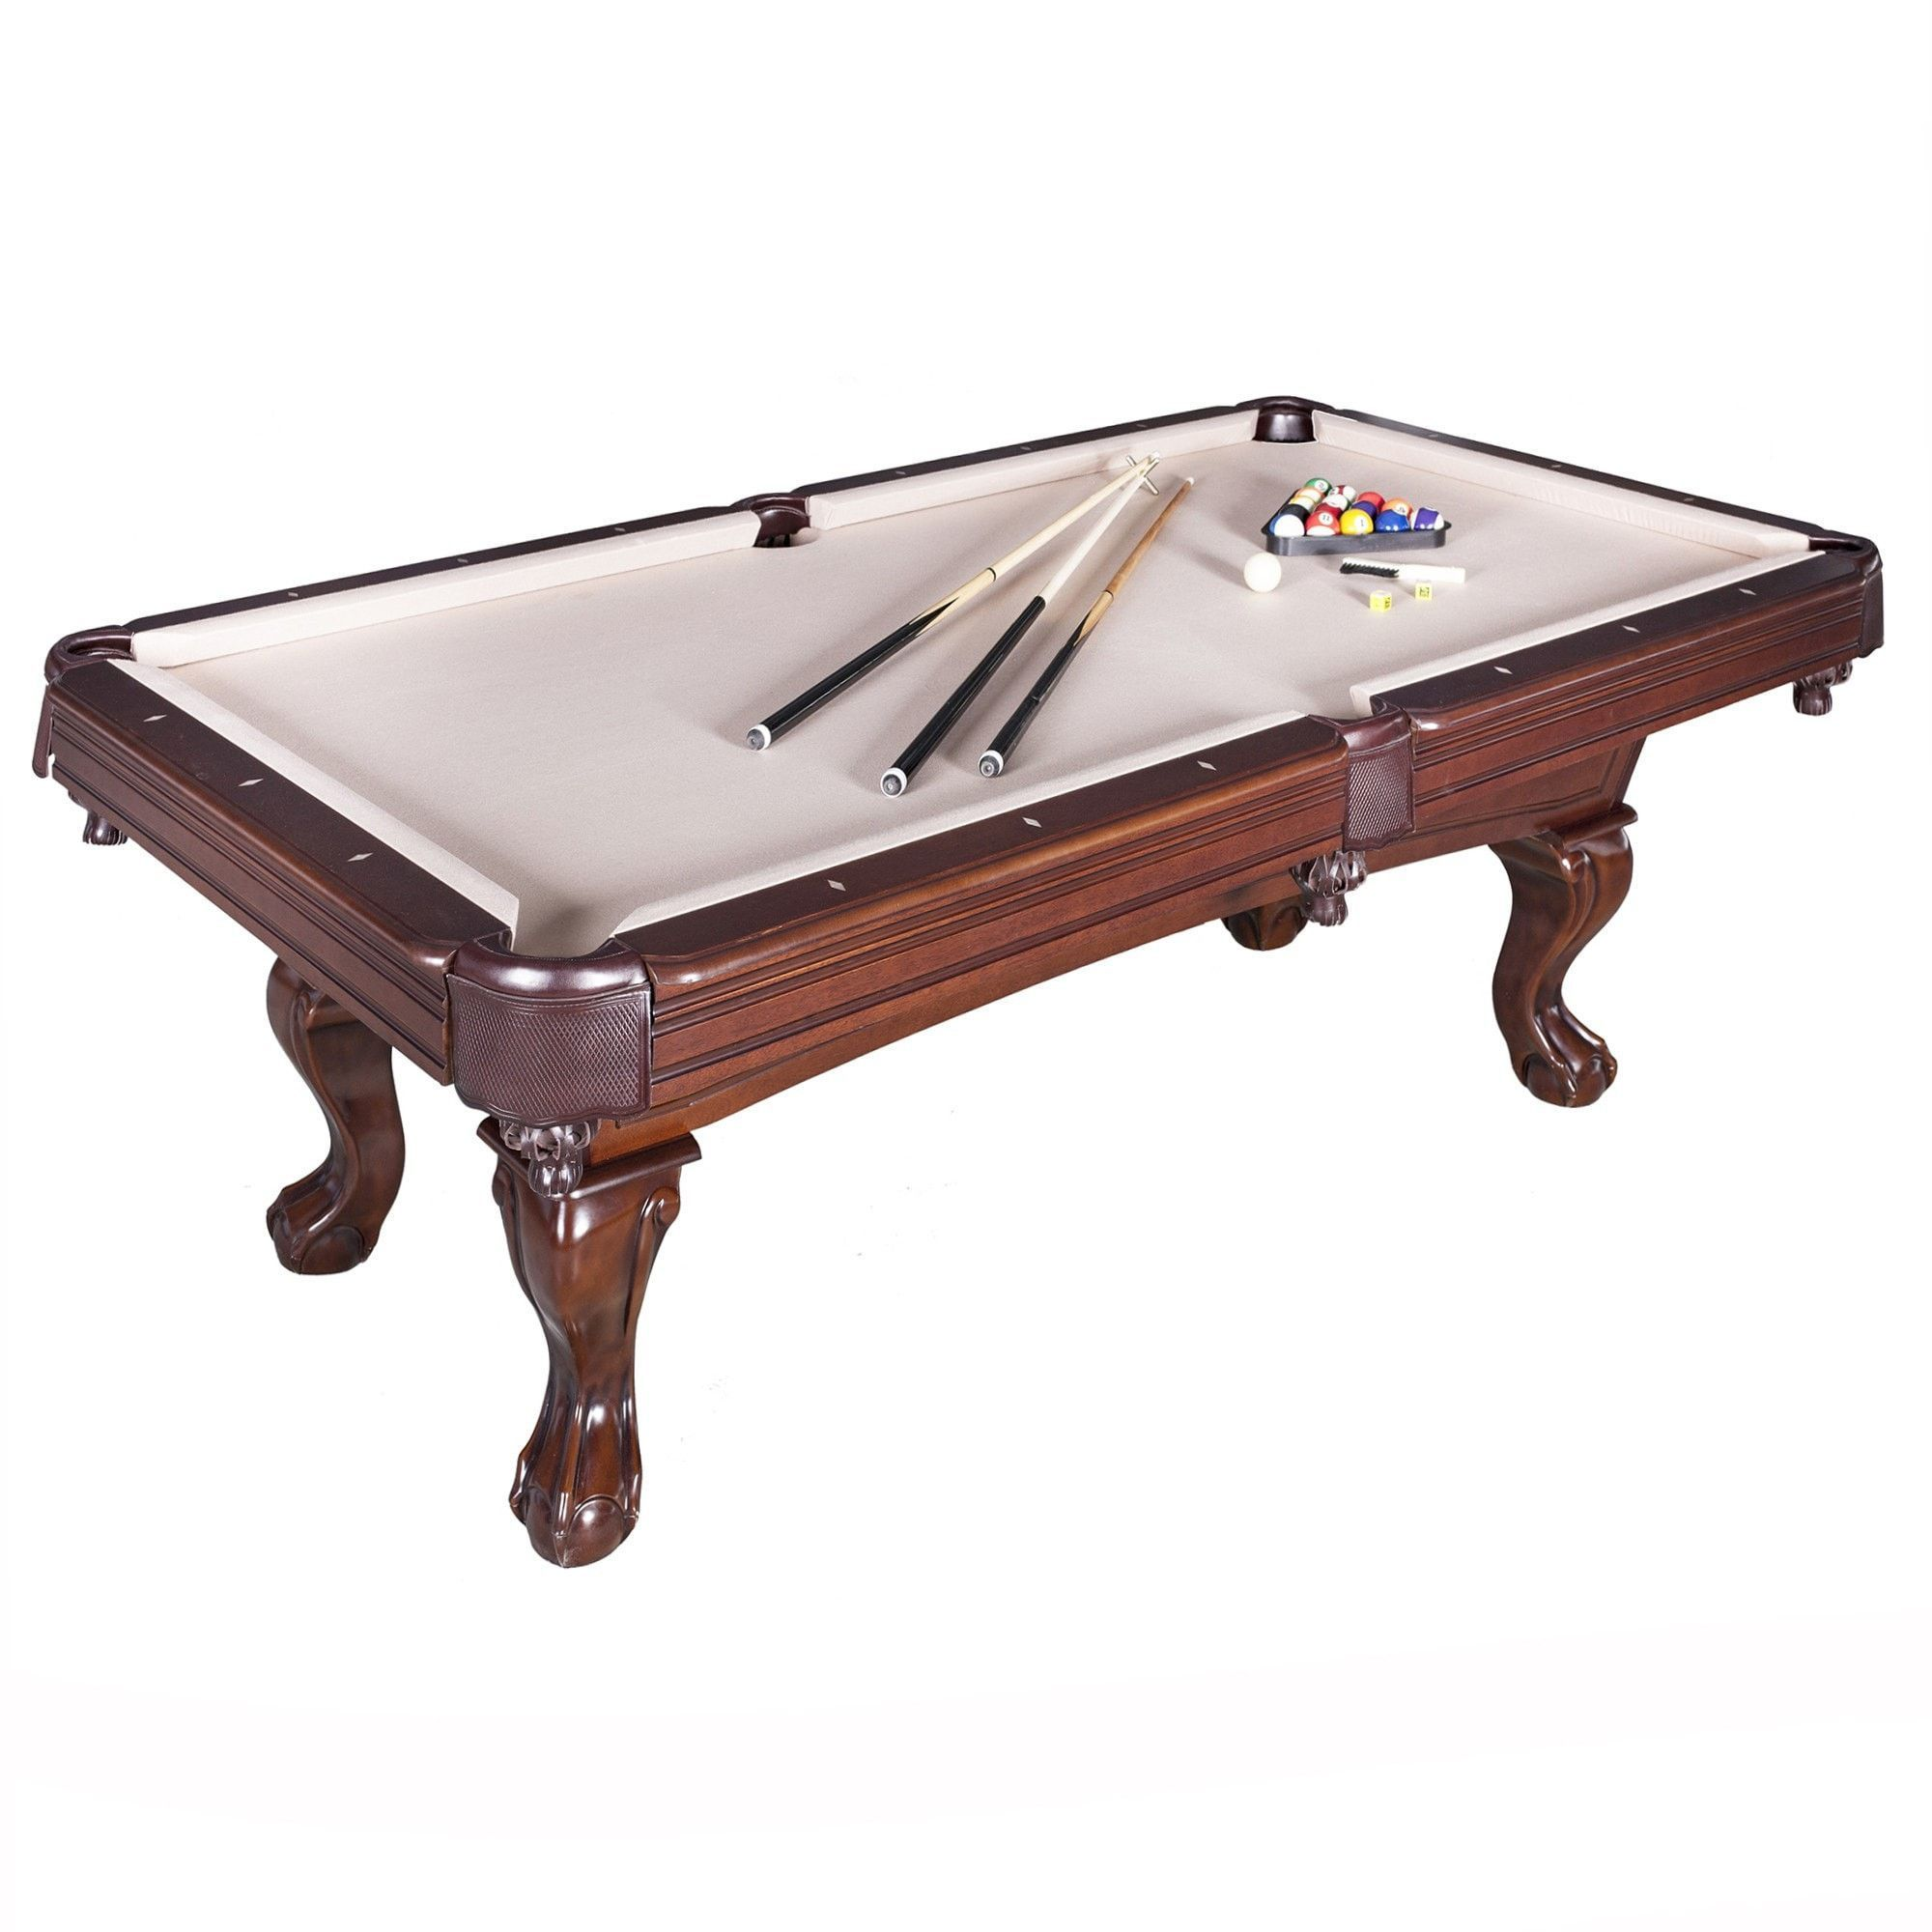 Hathaway Sports Augusta 8ft NonSlate Pool Table Walnut